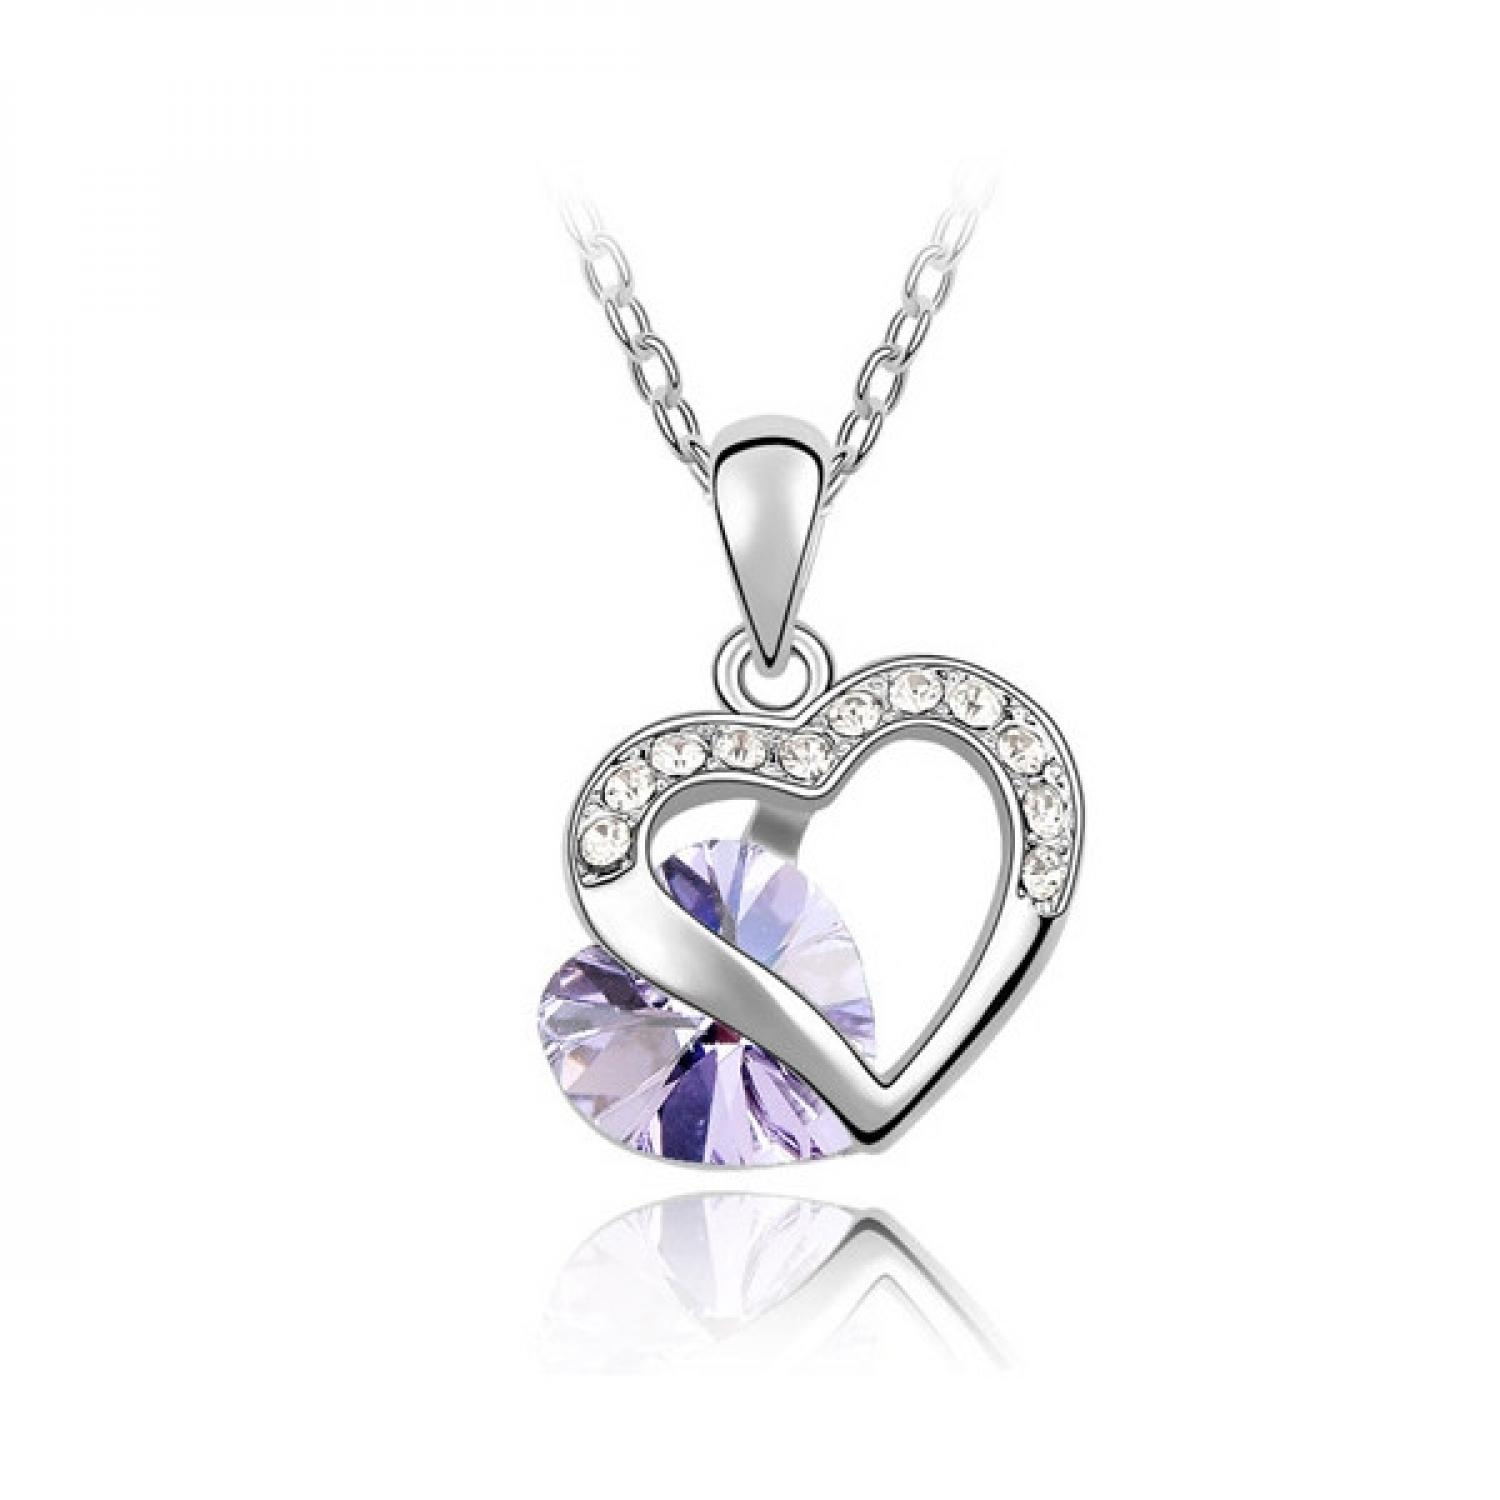 Kalung Liontin Wanita Double Heart Necklace 925 Sterling Silver